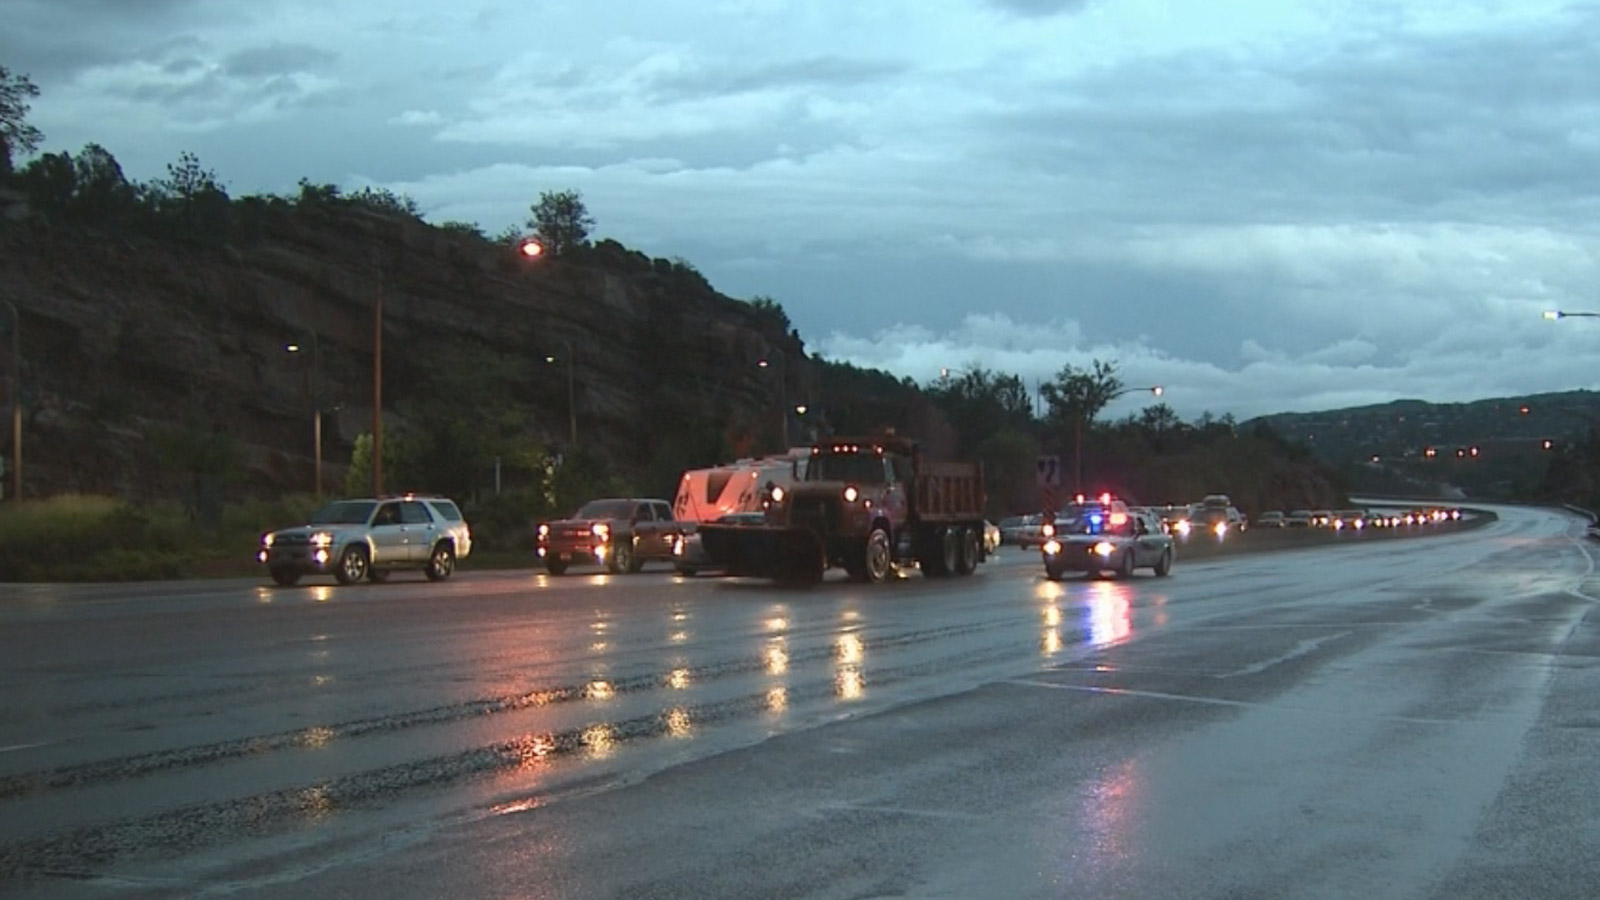 Highway 24 was closed because of flash flooding (credit: CBS)